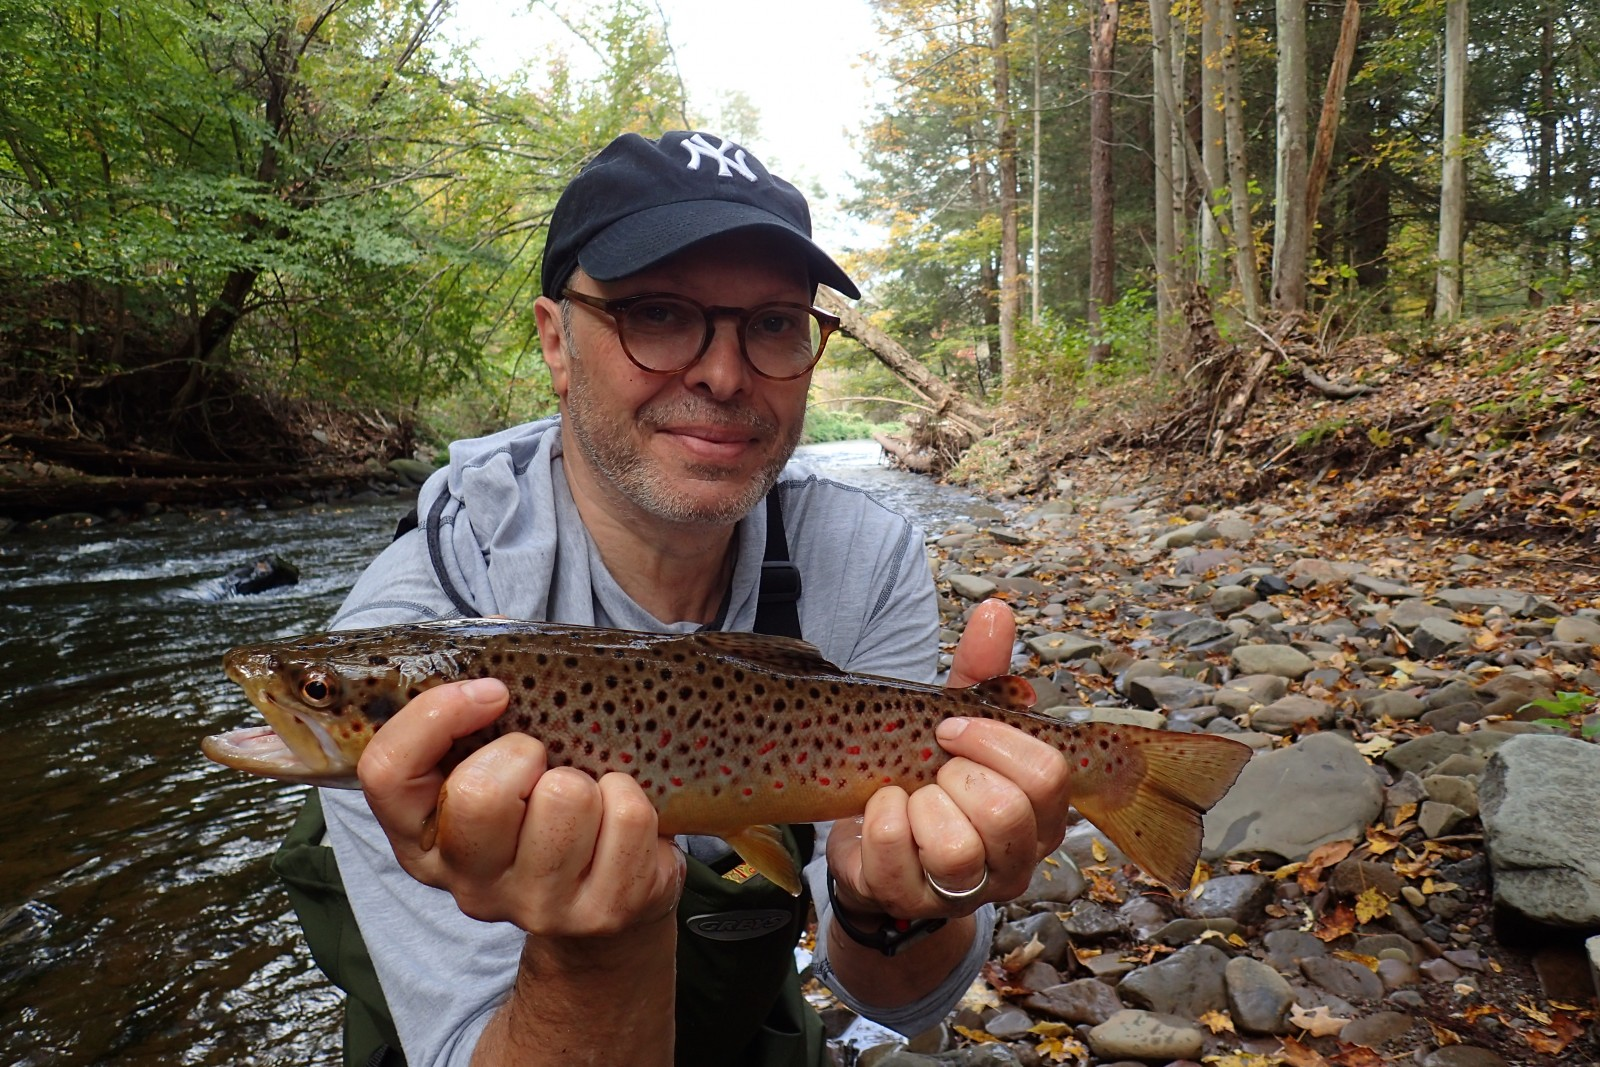 guided fly fishing trips in the pocono mountains with filingo fly fishing and jesse filingo